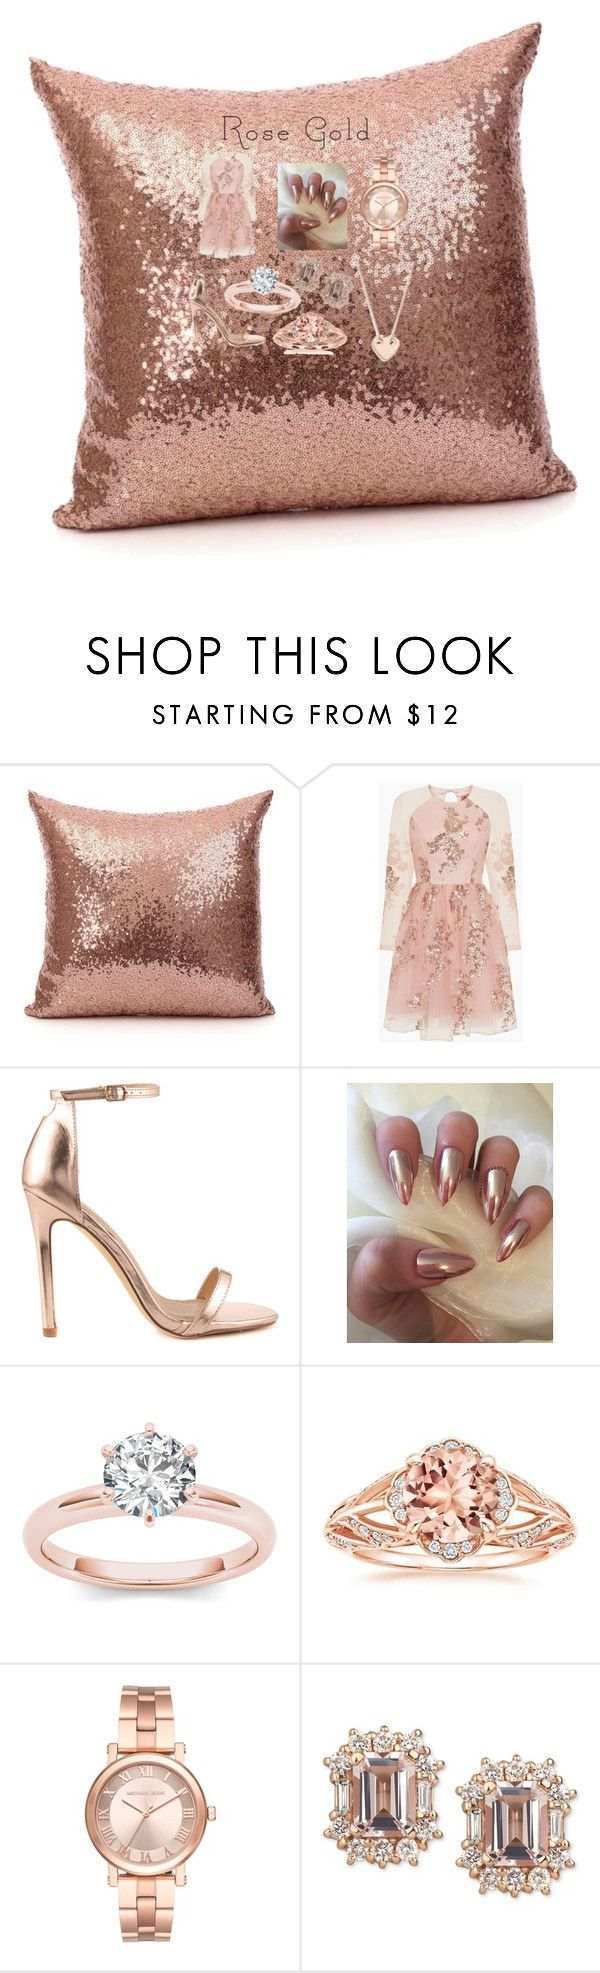 """""""rossy loves rosy gold 💕"""" by katiemercedes ❤ liked on Polyvore featuring Chi Chi, Liliana, Michael Kors, Ginette NY, love, gold, rosy, ross and rosegoldchallenge"""